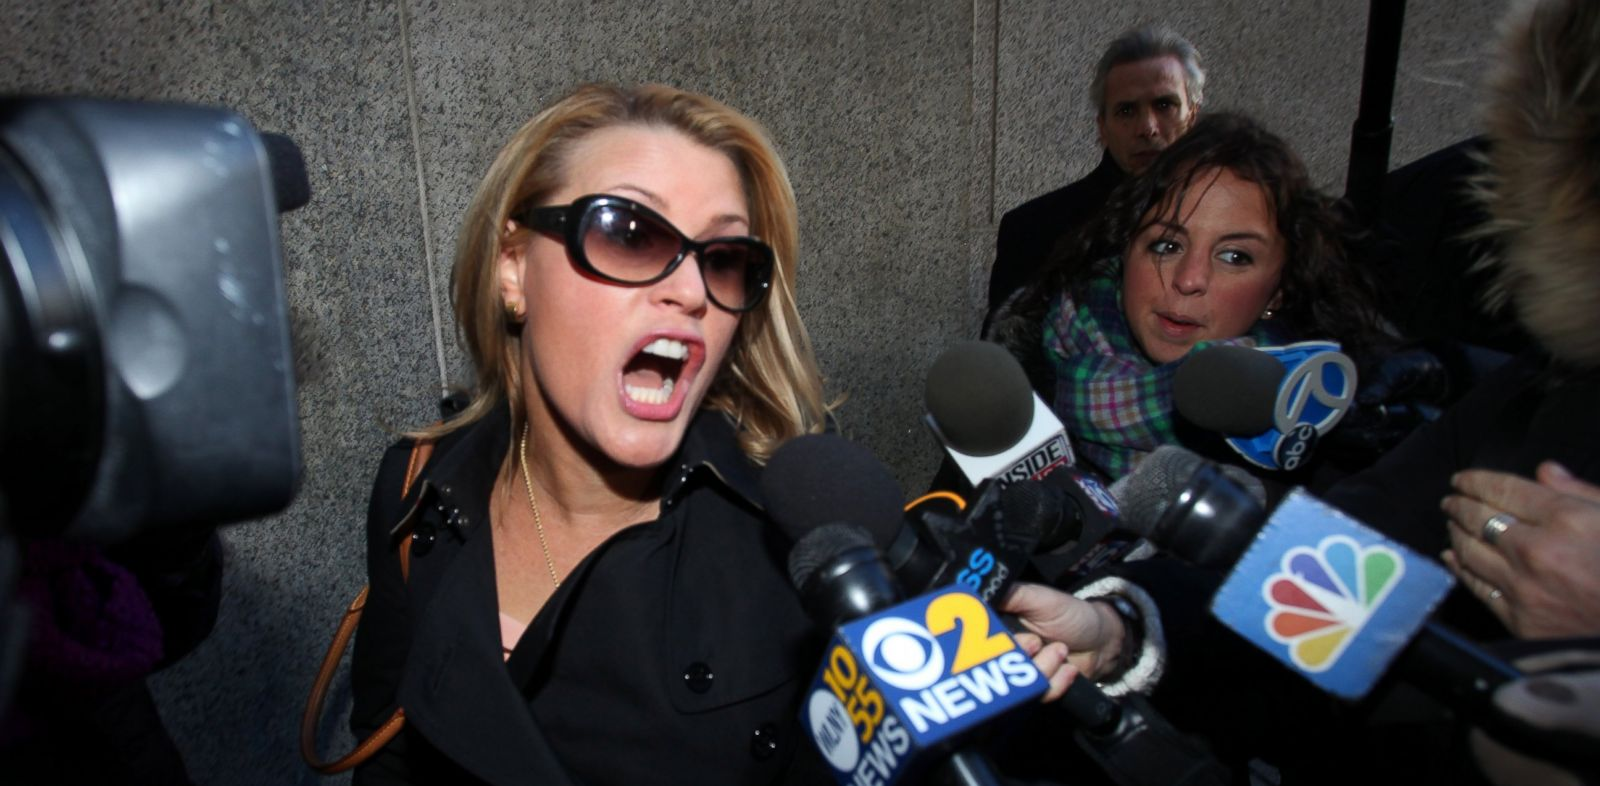 PHOTO: Genevieve Sabourin arrives at the Manhattan Criminal Court, Nov. 13, 2013, in New York.